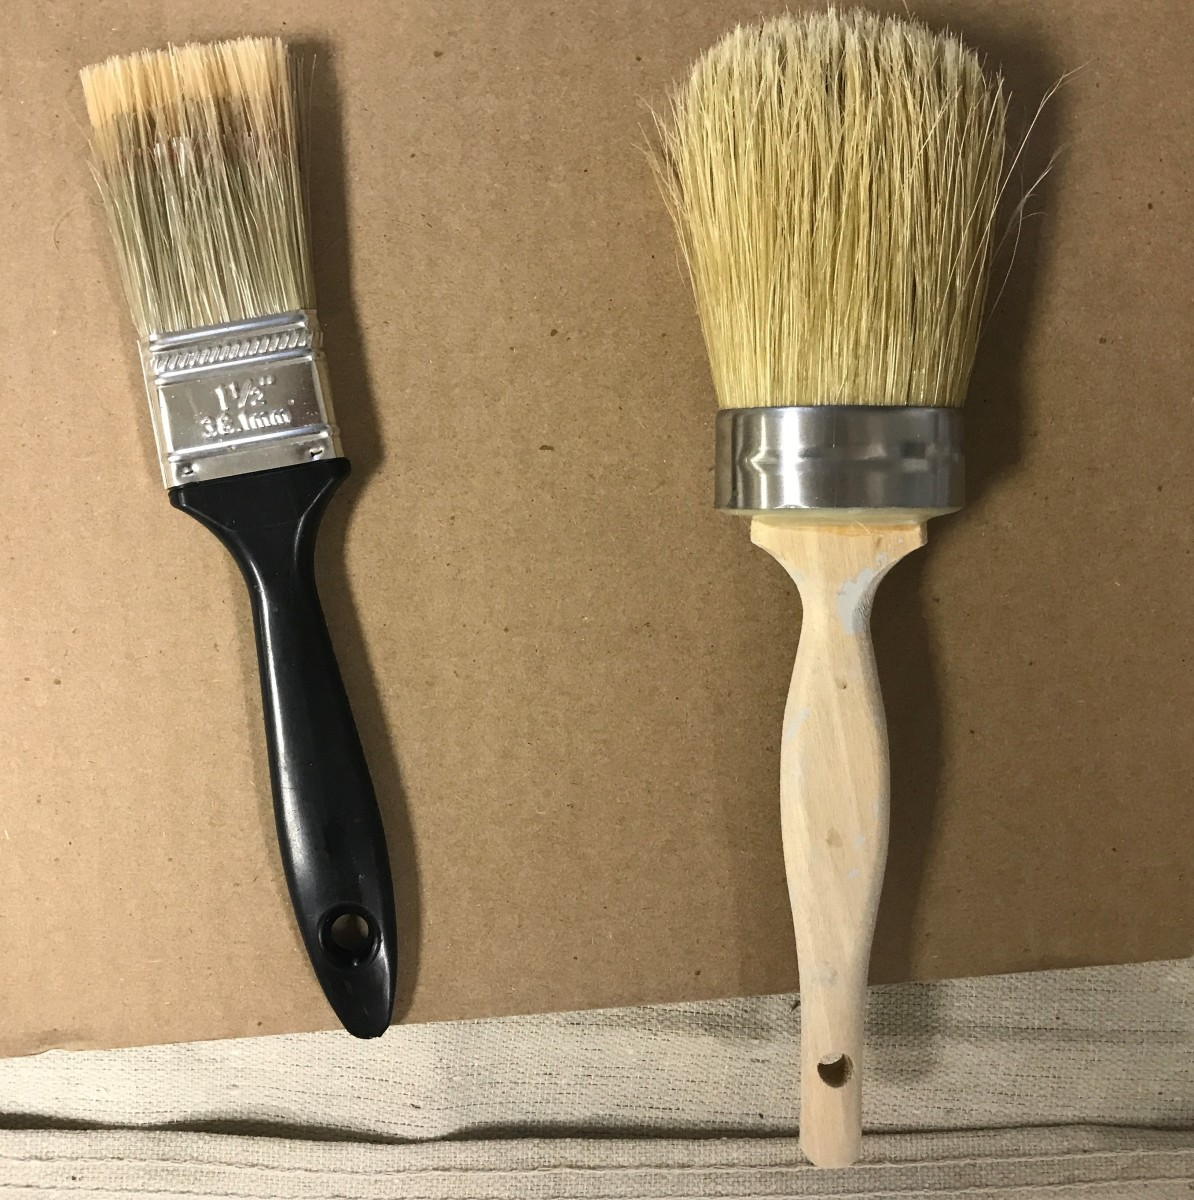 The  Chalk Paint Brush is an investment, but will serve you well.  I used a regular smaller paint brush to get in small places.  It's your call.